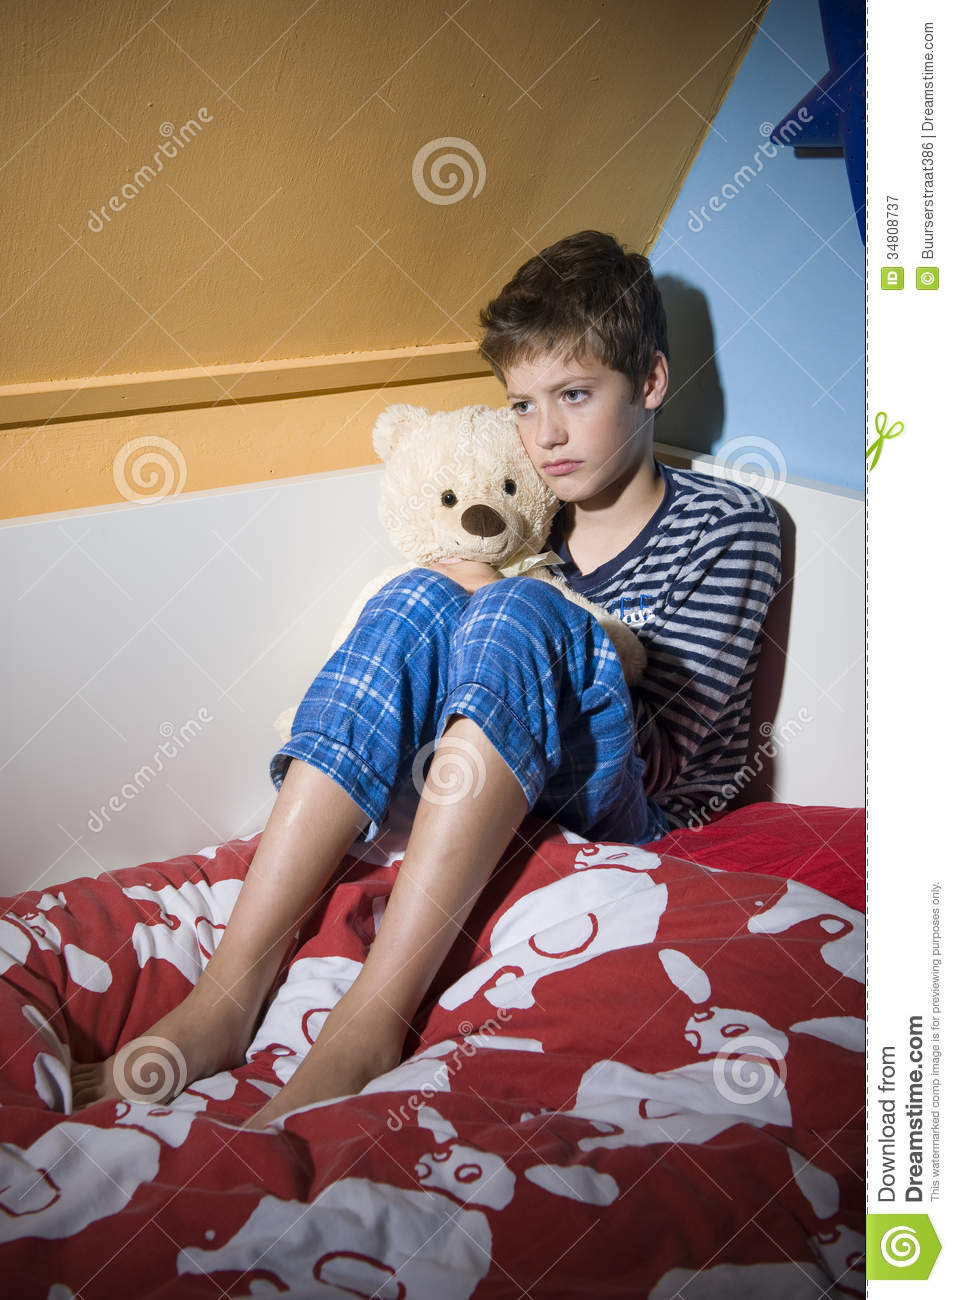 sad and depressed boy on his bed stock image image of neglect youth 34808737. Black Bedroom Furniture Sets. Home Design Ideas